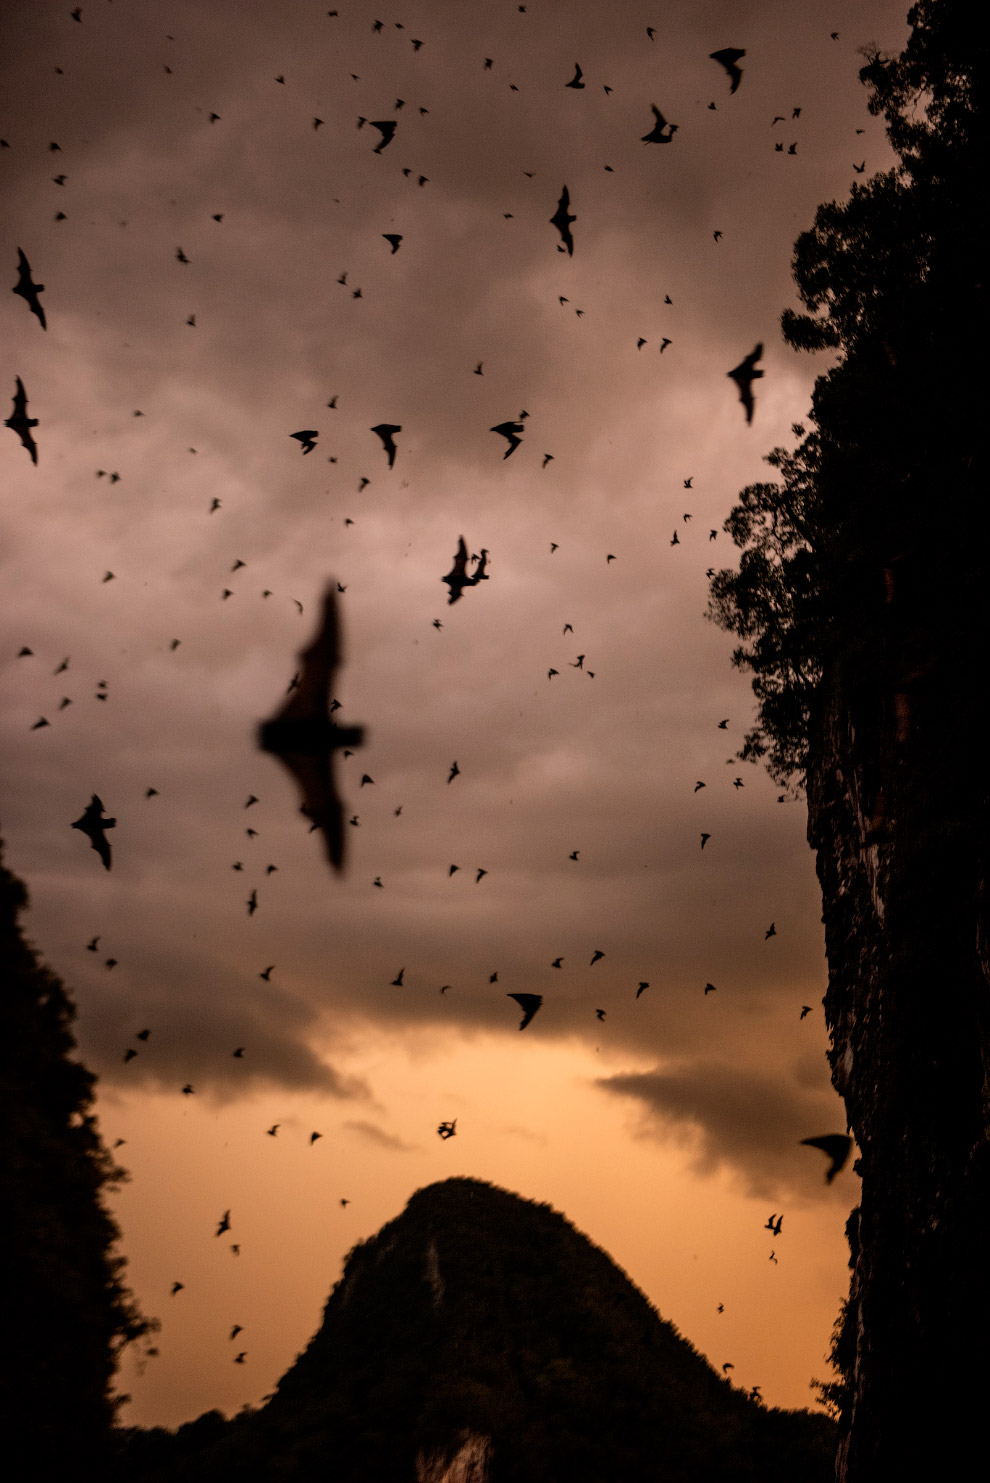 The deer cave Borneo live over two million bats